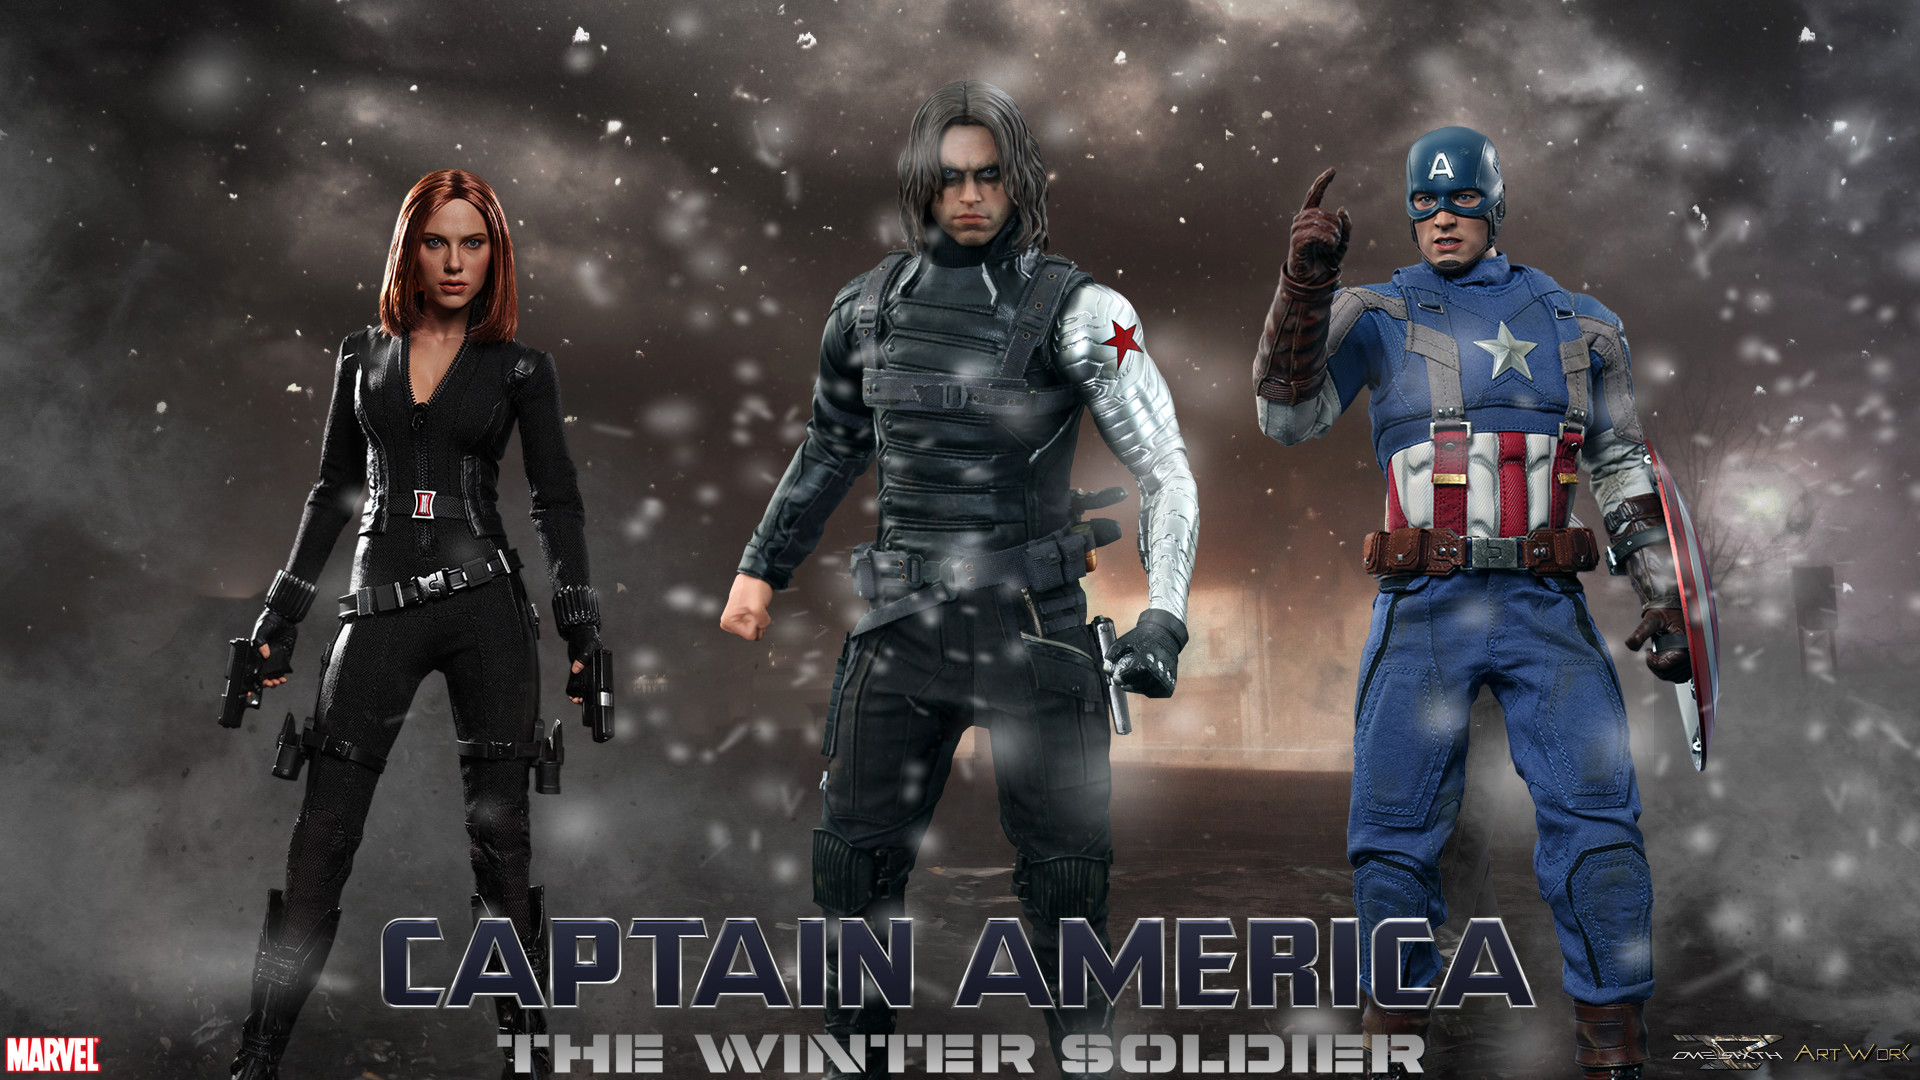 1920x1080 Captain America The Winter Soldier Hot Toys Full HD Wallpaper